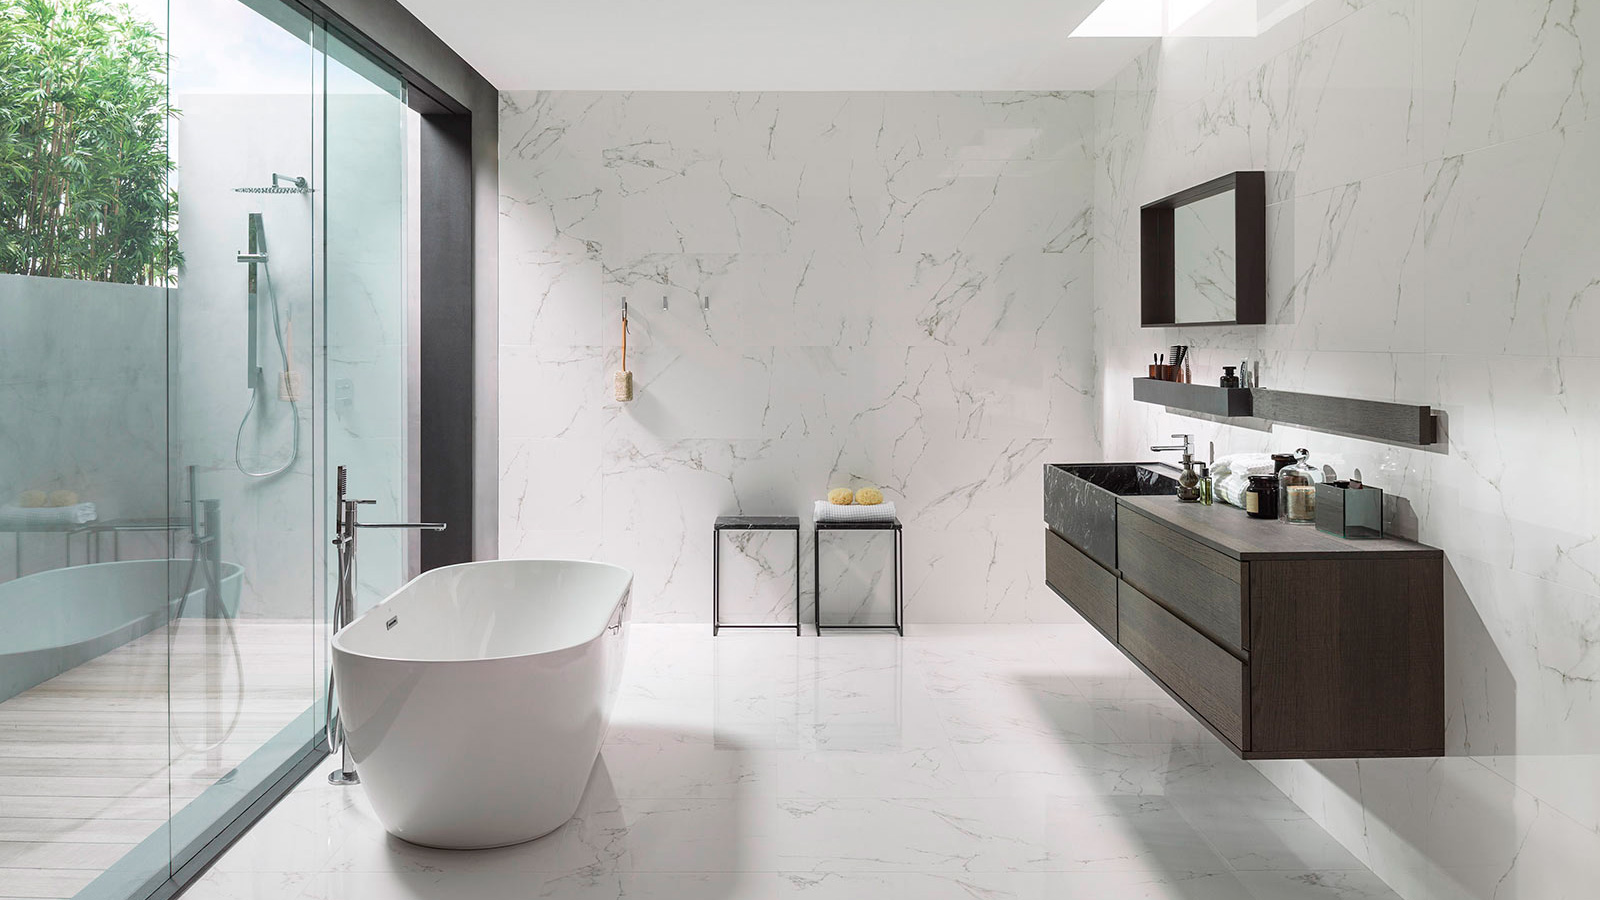 The marble bathroom, never out of style